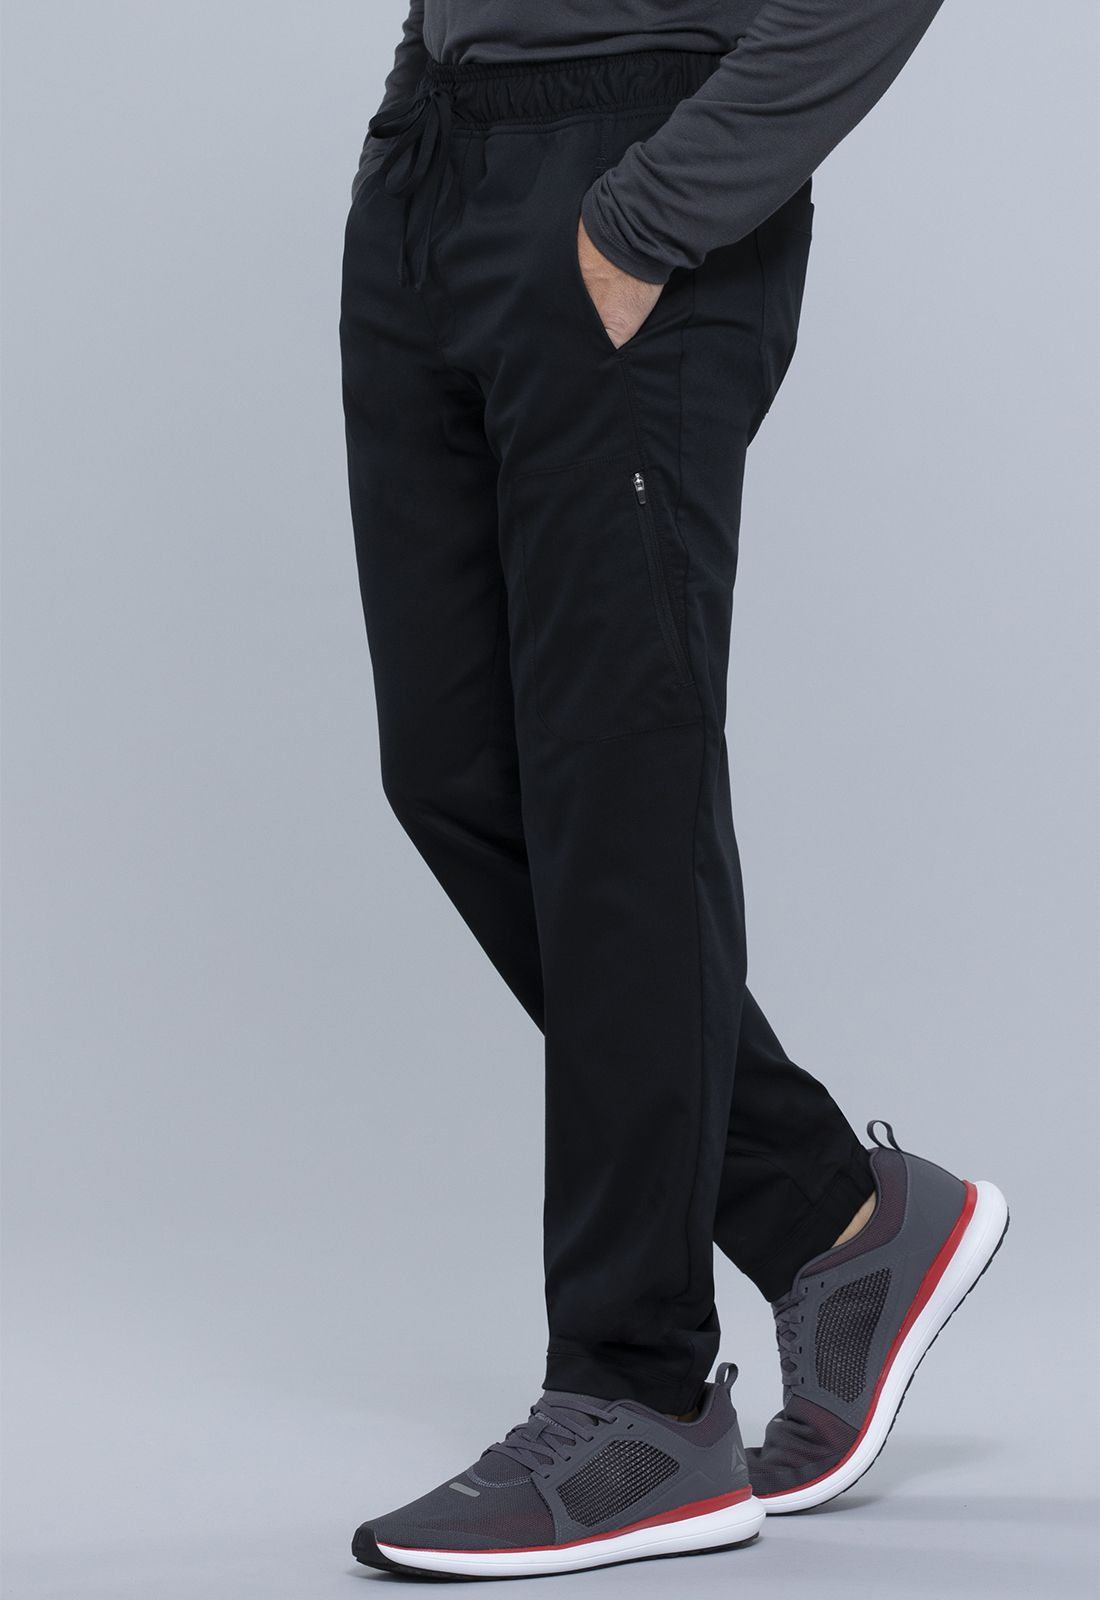 https://medcloth.by/images/stories/virtuemart/product/ww012-black-2.jpg